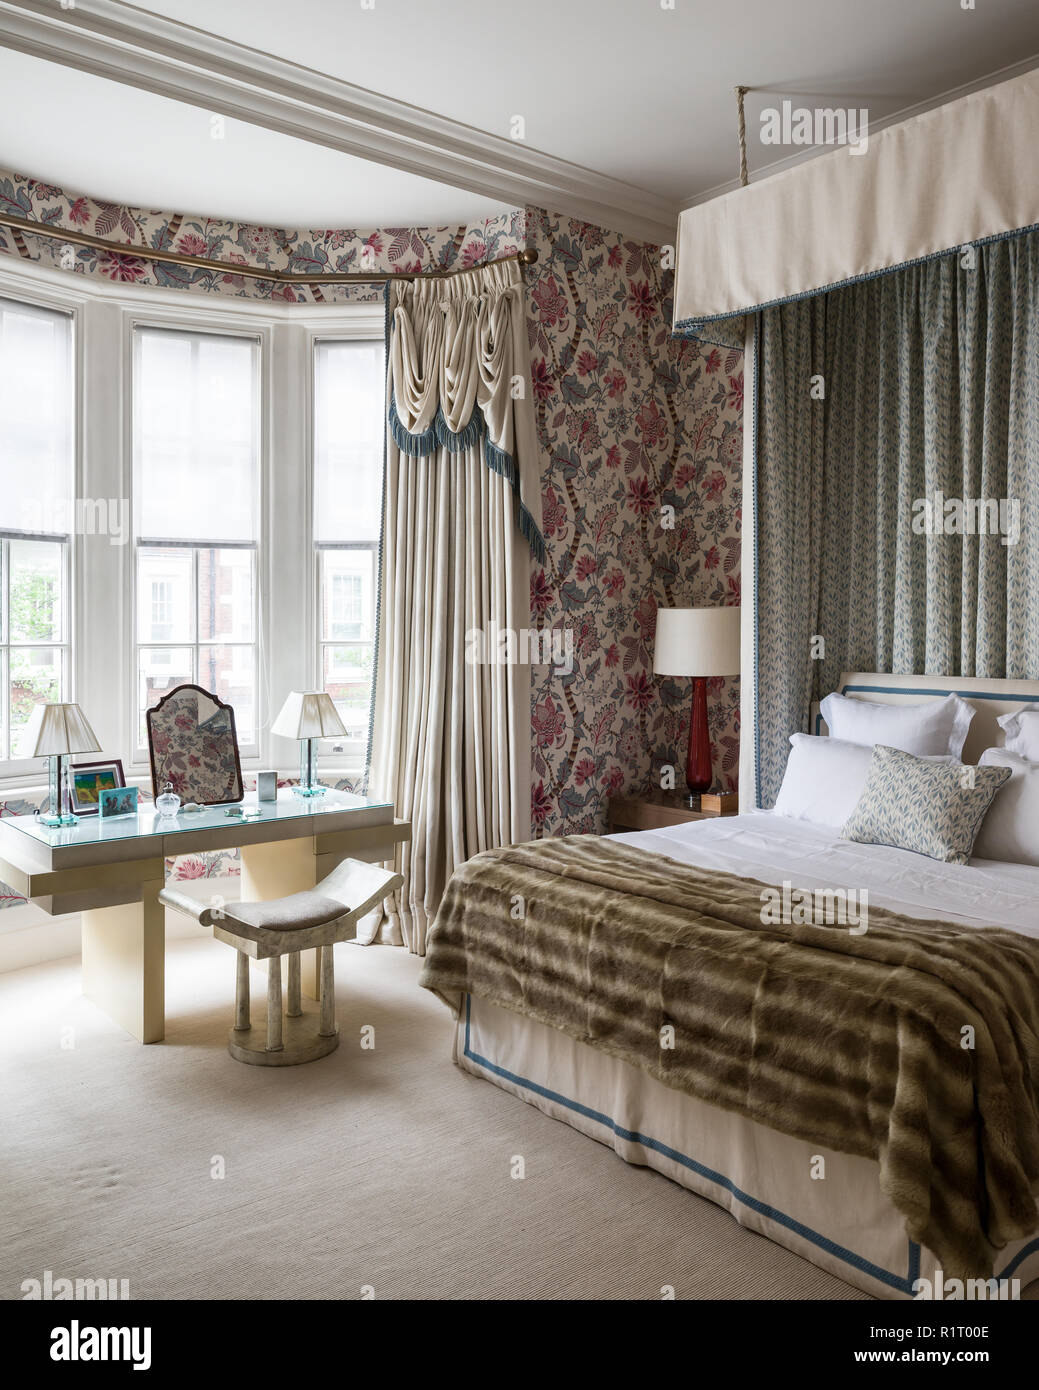 Edwardian Bedroom High Resolution Stock Photography And Images Alamy